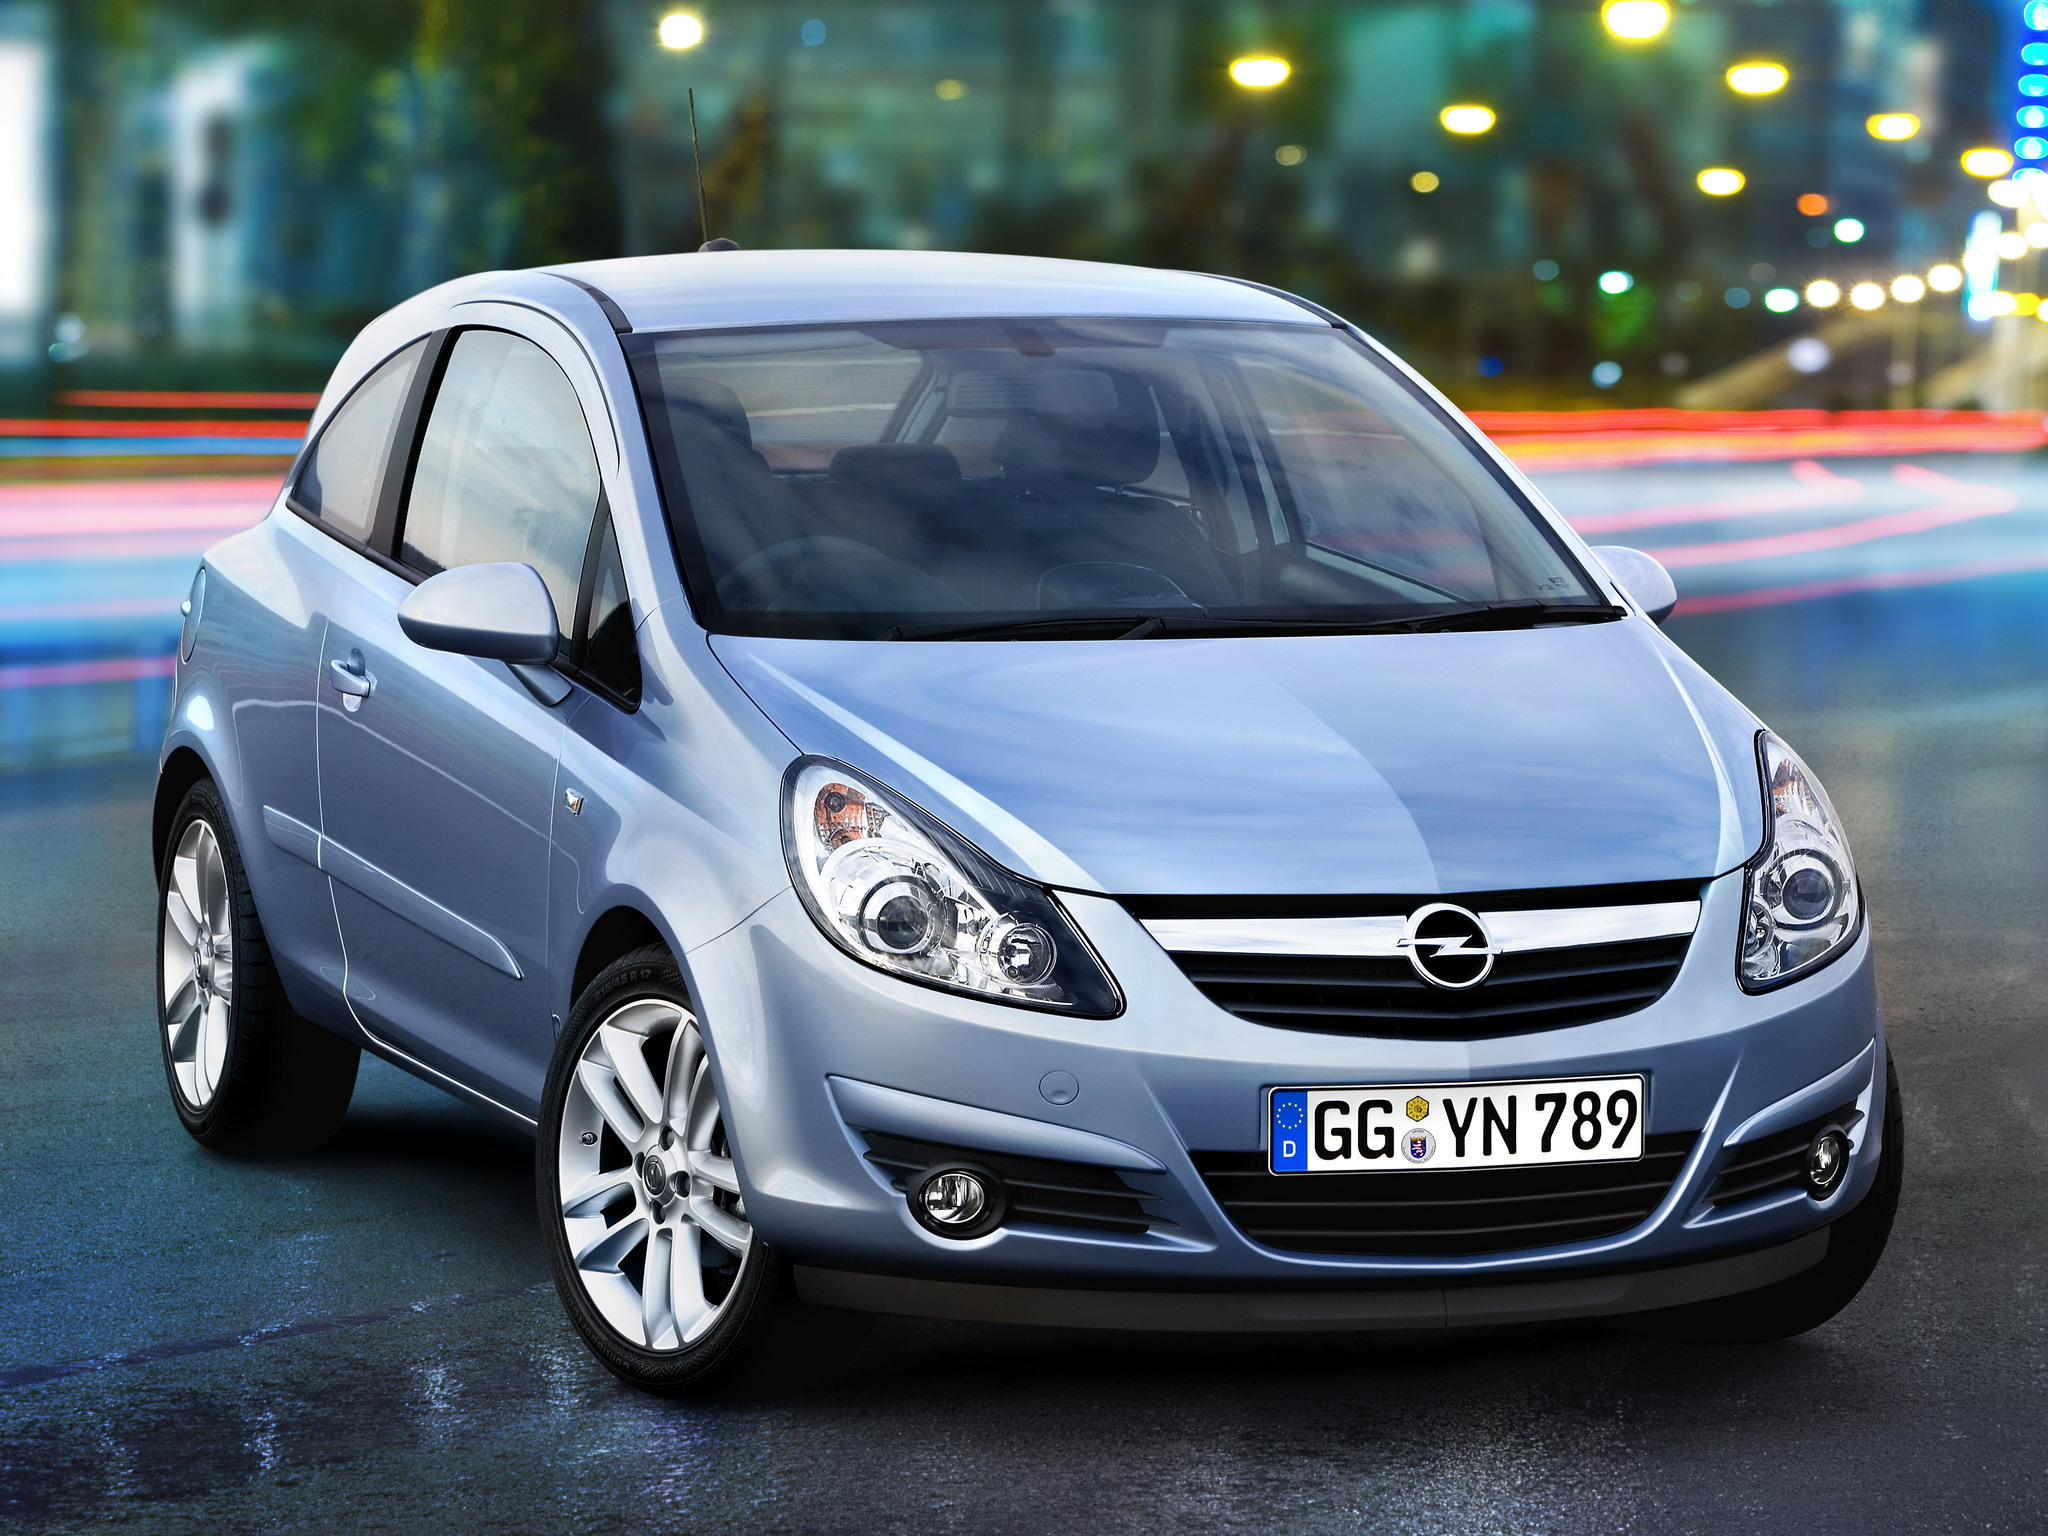 opel corsa car technical data car specifications vehicle fuel consumption information. Black Bedroom Furniture Sets. Home Design Ideas